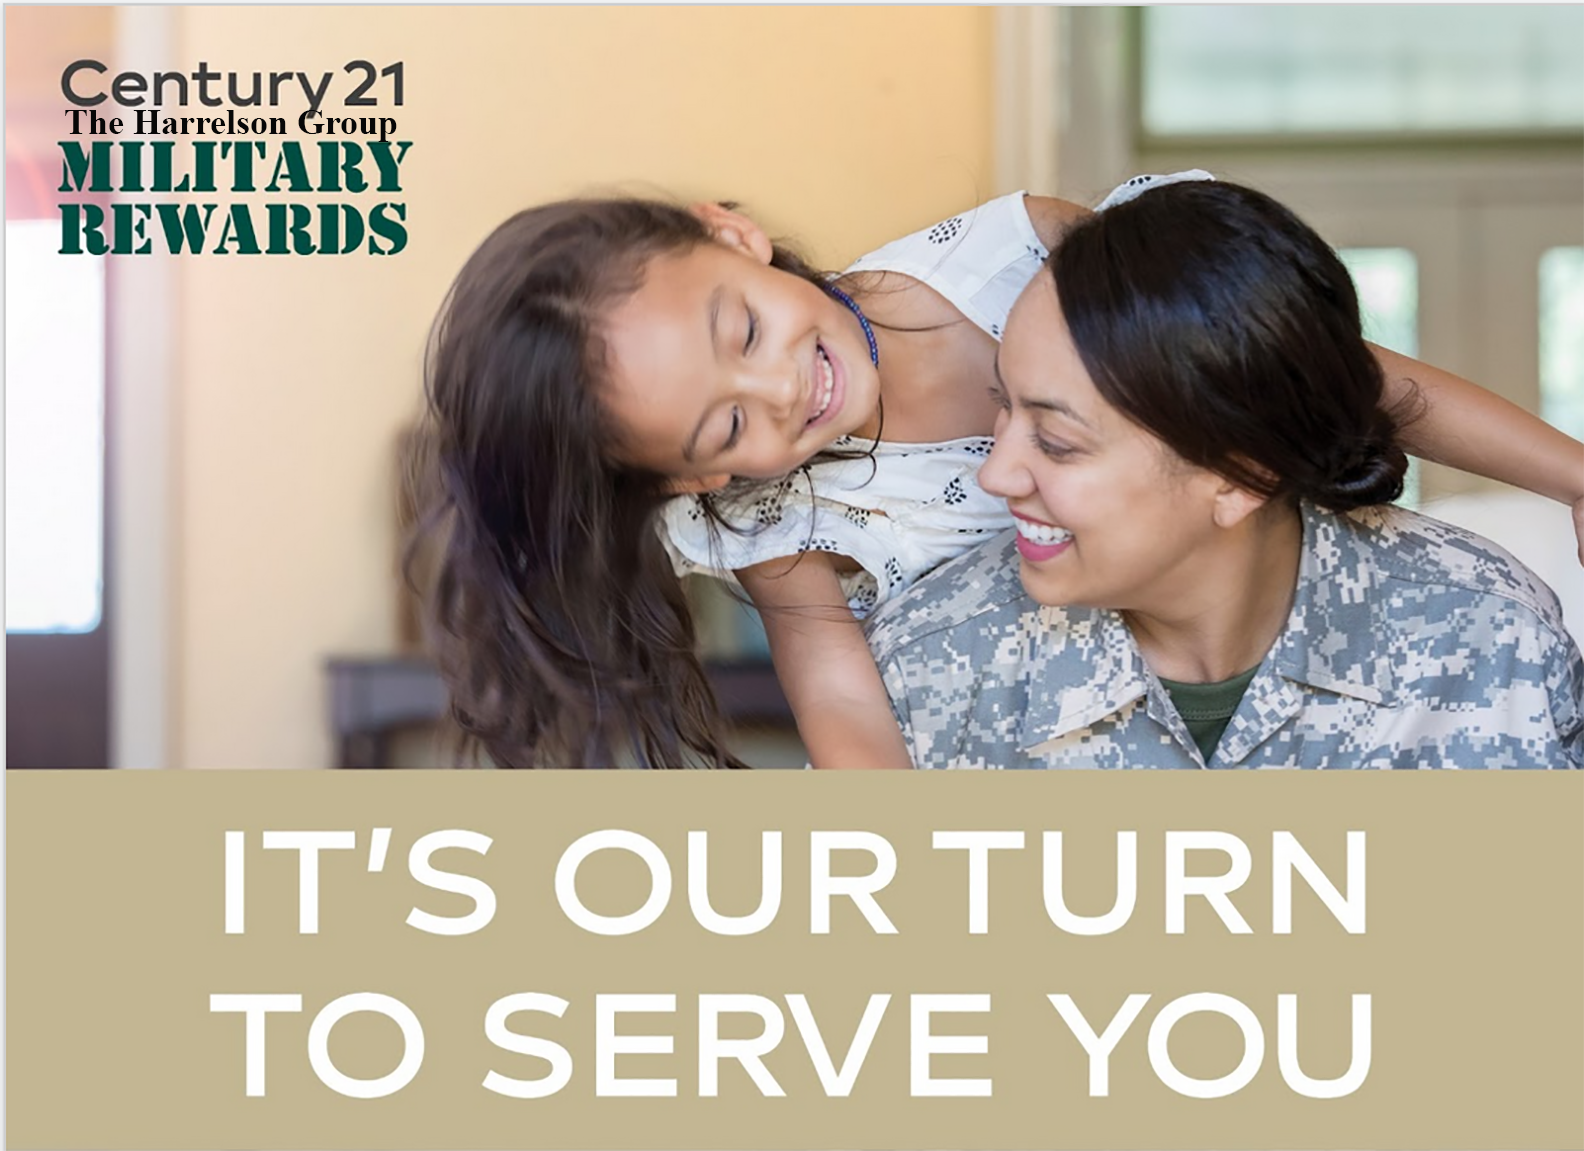 The Harrelson Group Military Rewards Program